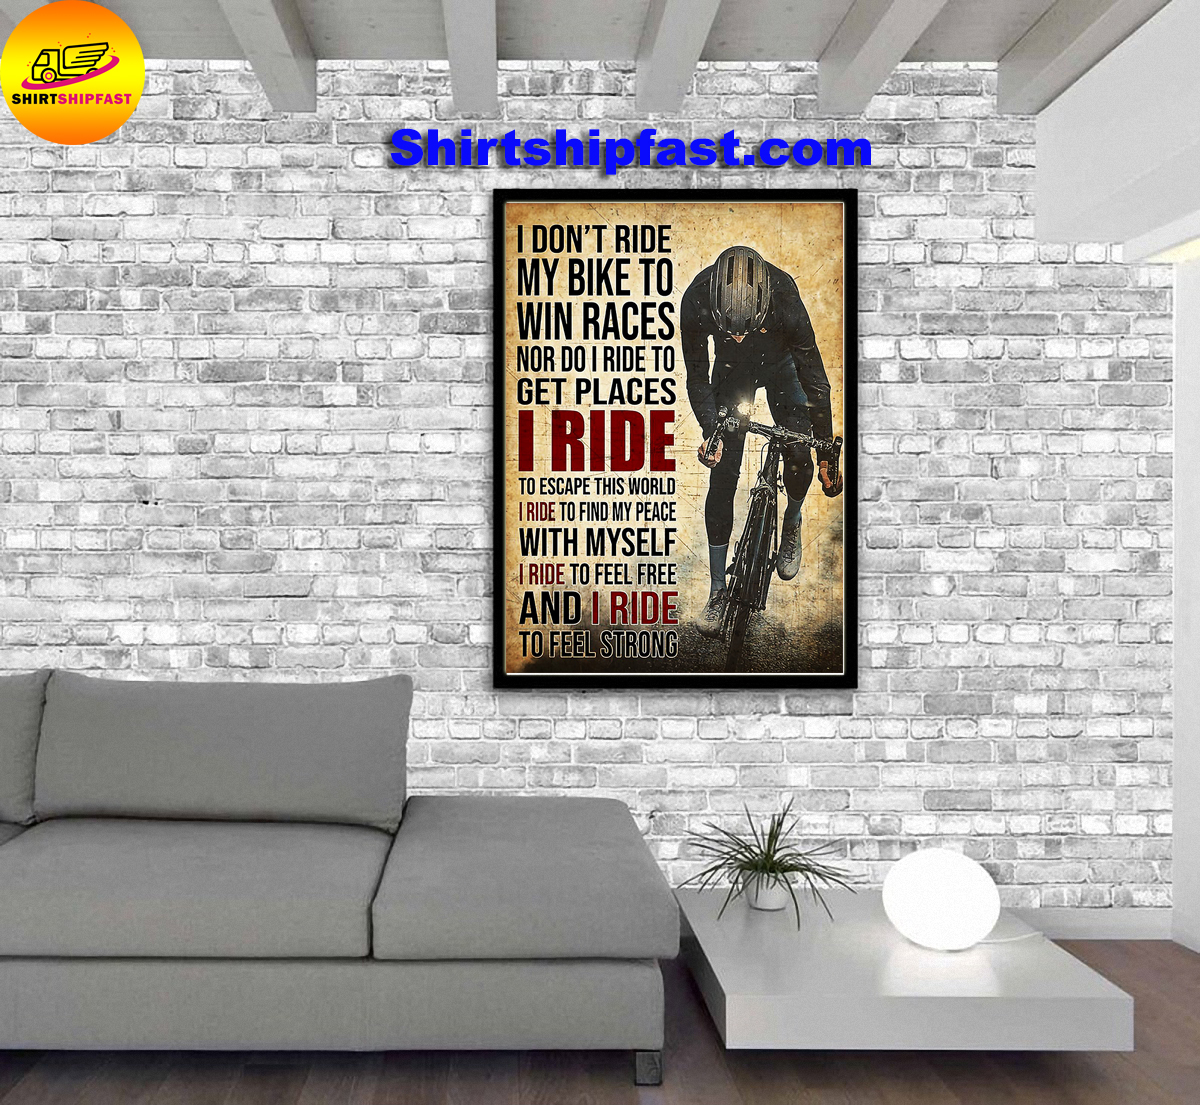 I don't ride my bike to win races Cycling poster - Picture 1